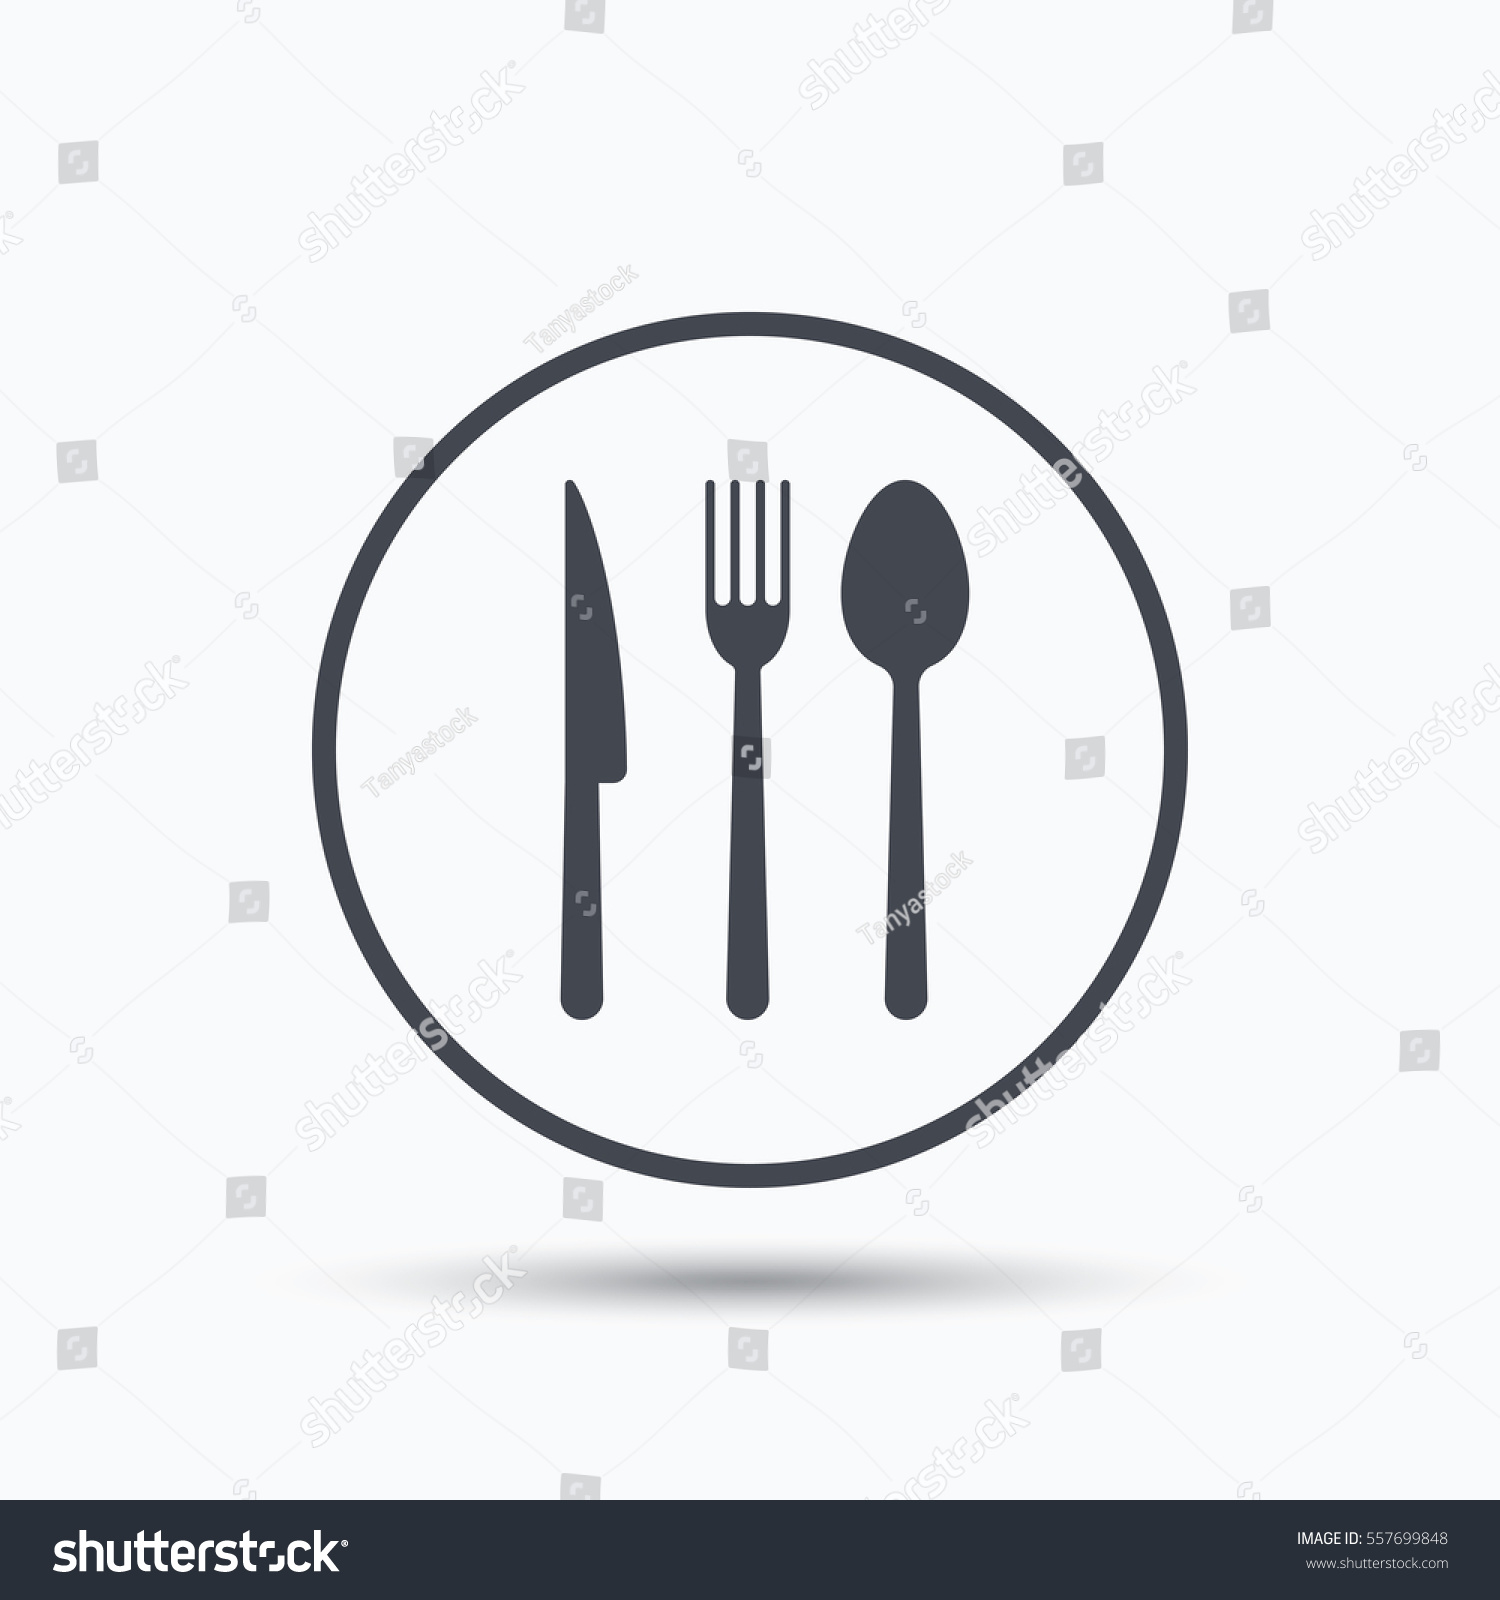 Fork Knife Spoon Icons Cutlery Symbol Stock Illustration 557699848